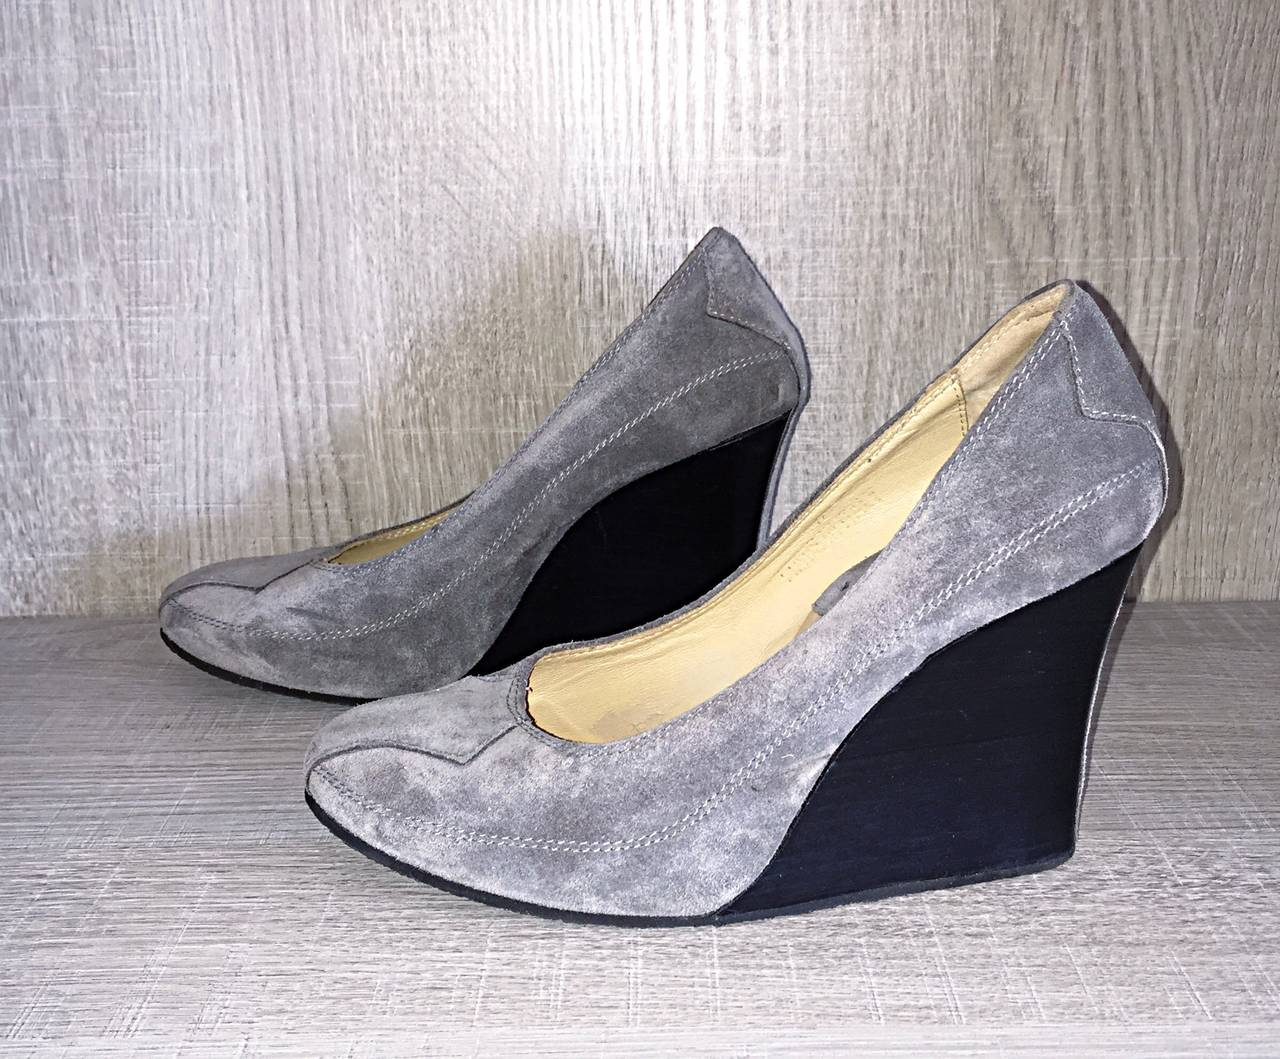 Women's Never Worn Goldenbleu Gray Shoes / Wedges Size 36.5 / 6 - 6.5 Made in Italy For Sale